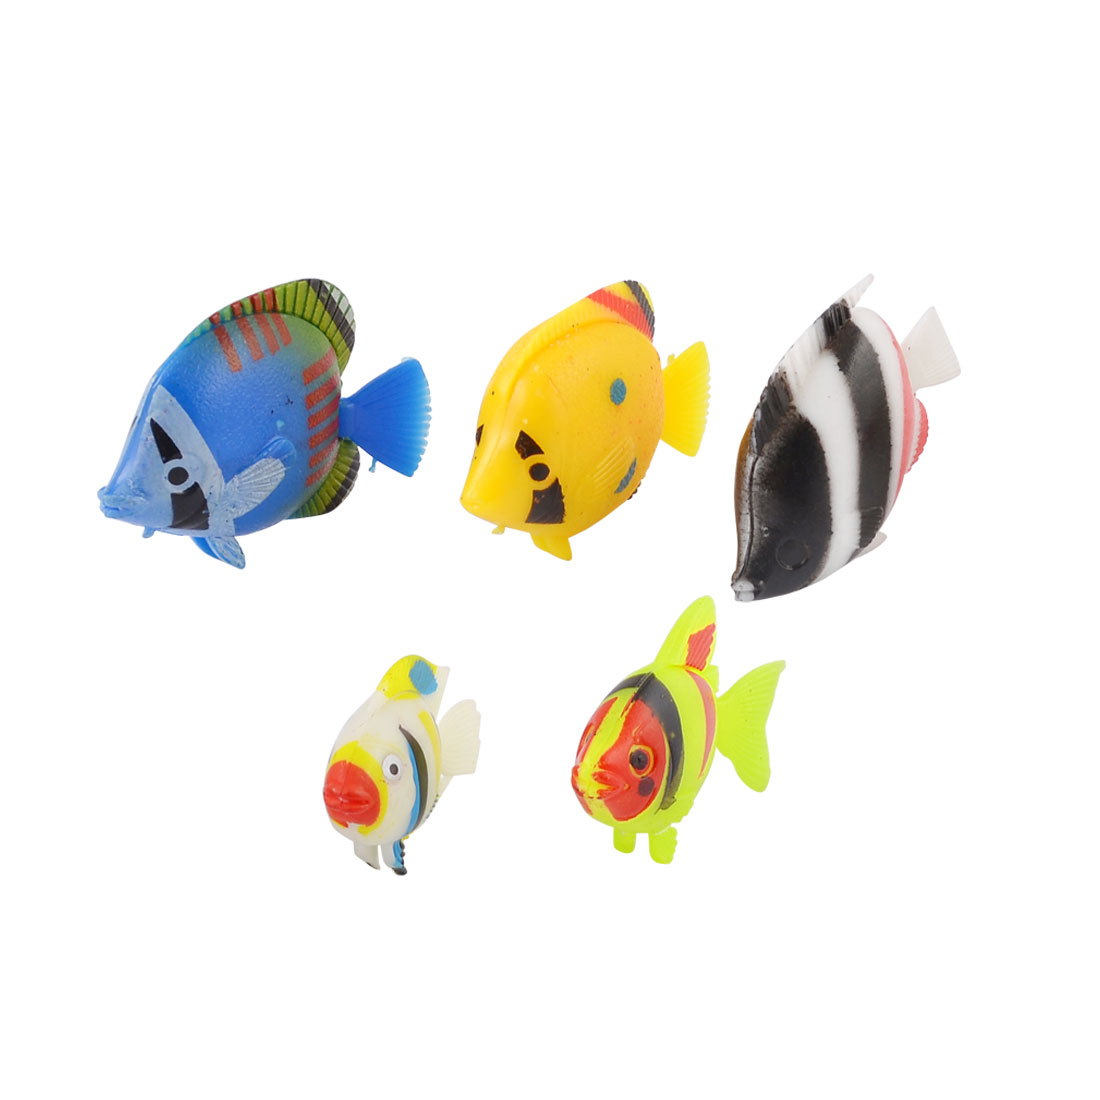 5 Pcs Plastic Simulated Movable Striped Fish Ornament Yellow Black for Aquarium